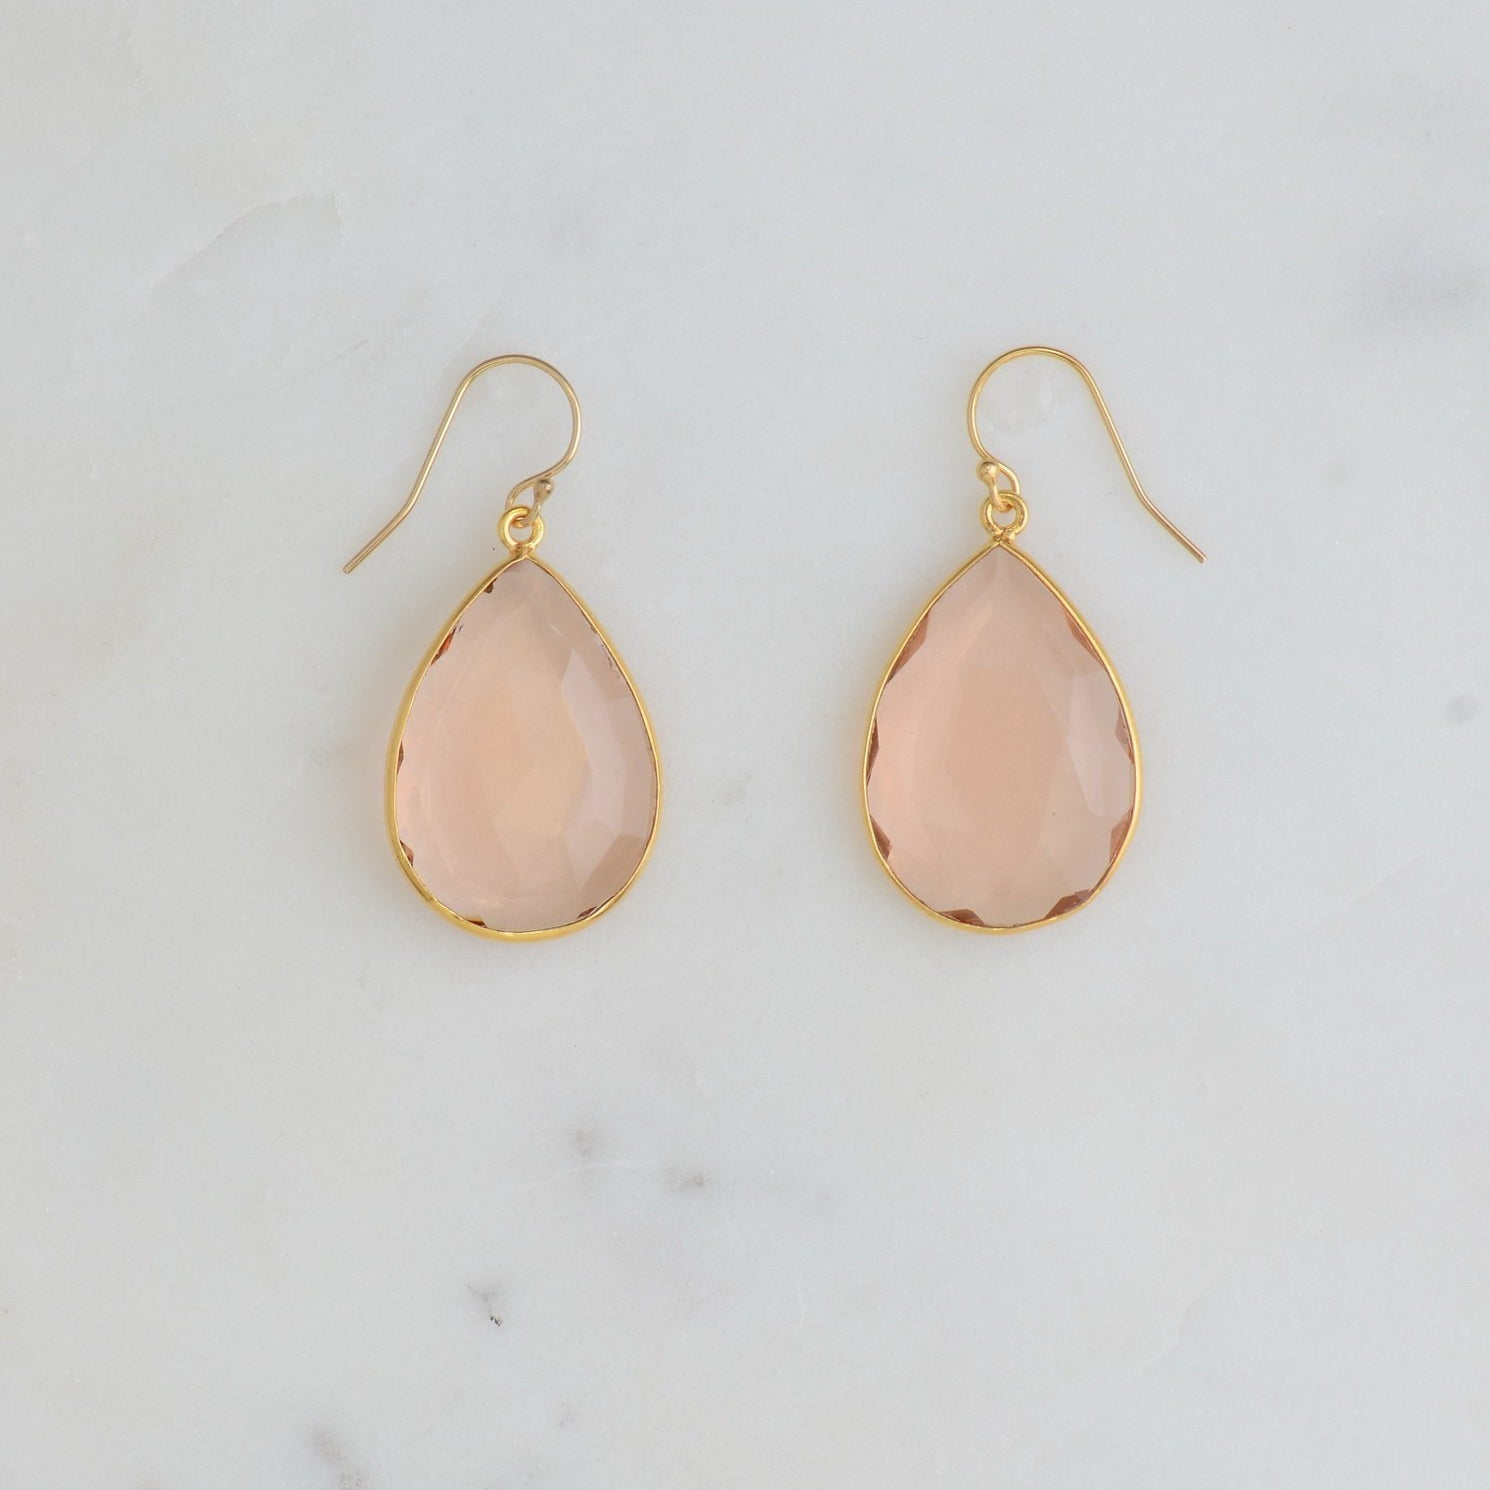 Morganite Earring, Bridal Earring, Blush Earring, Bridesmaid Gift, Wedding Earring, Elegant Earring, Teardrop shape earring, Christmas Gift